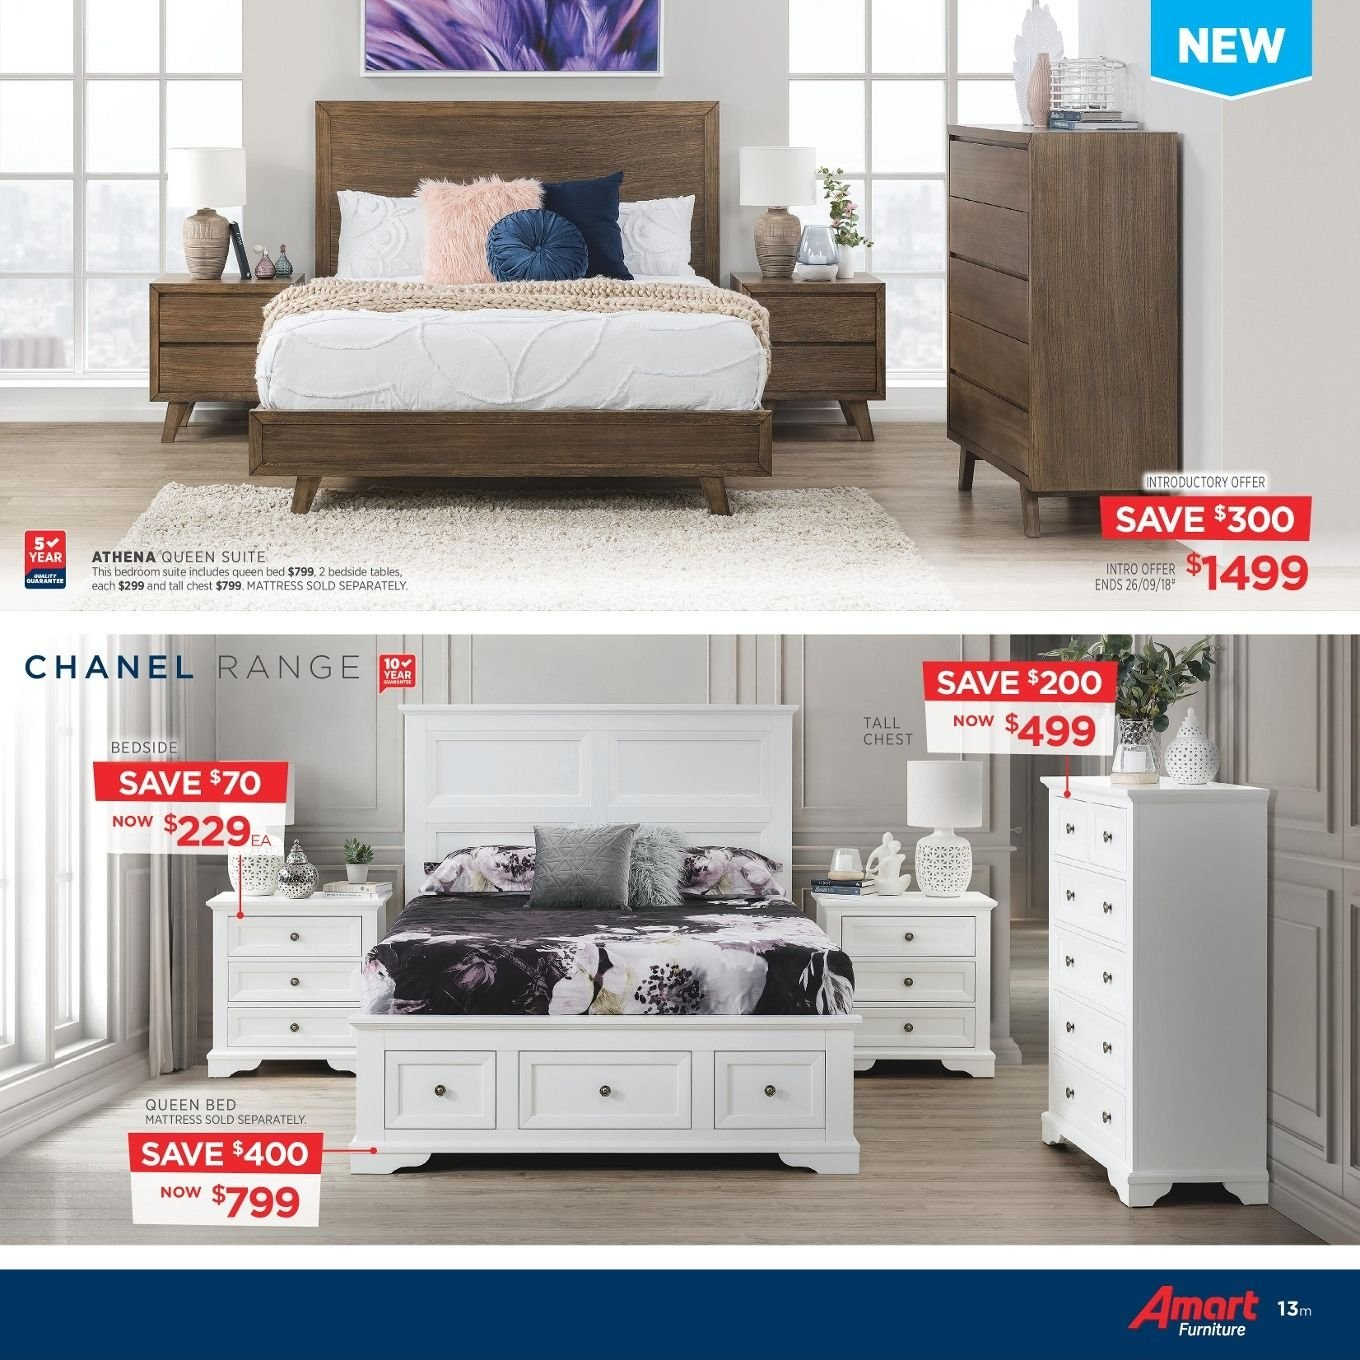 Amart Furniture catalogue  - 27.8.2018 - 26.9.2018. Page 13.